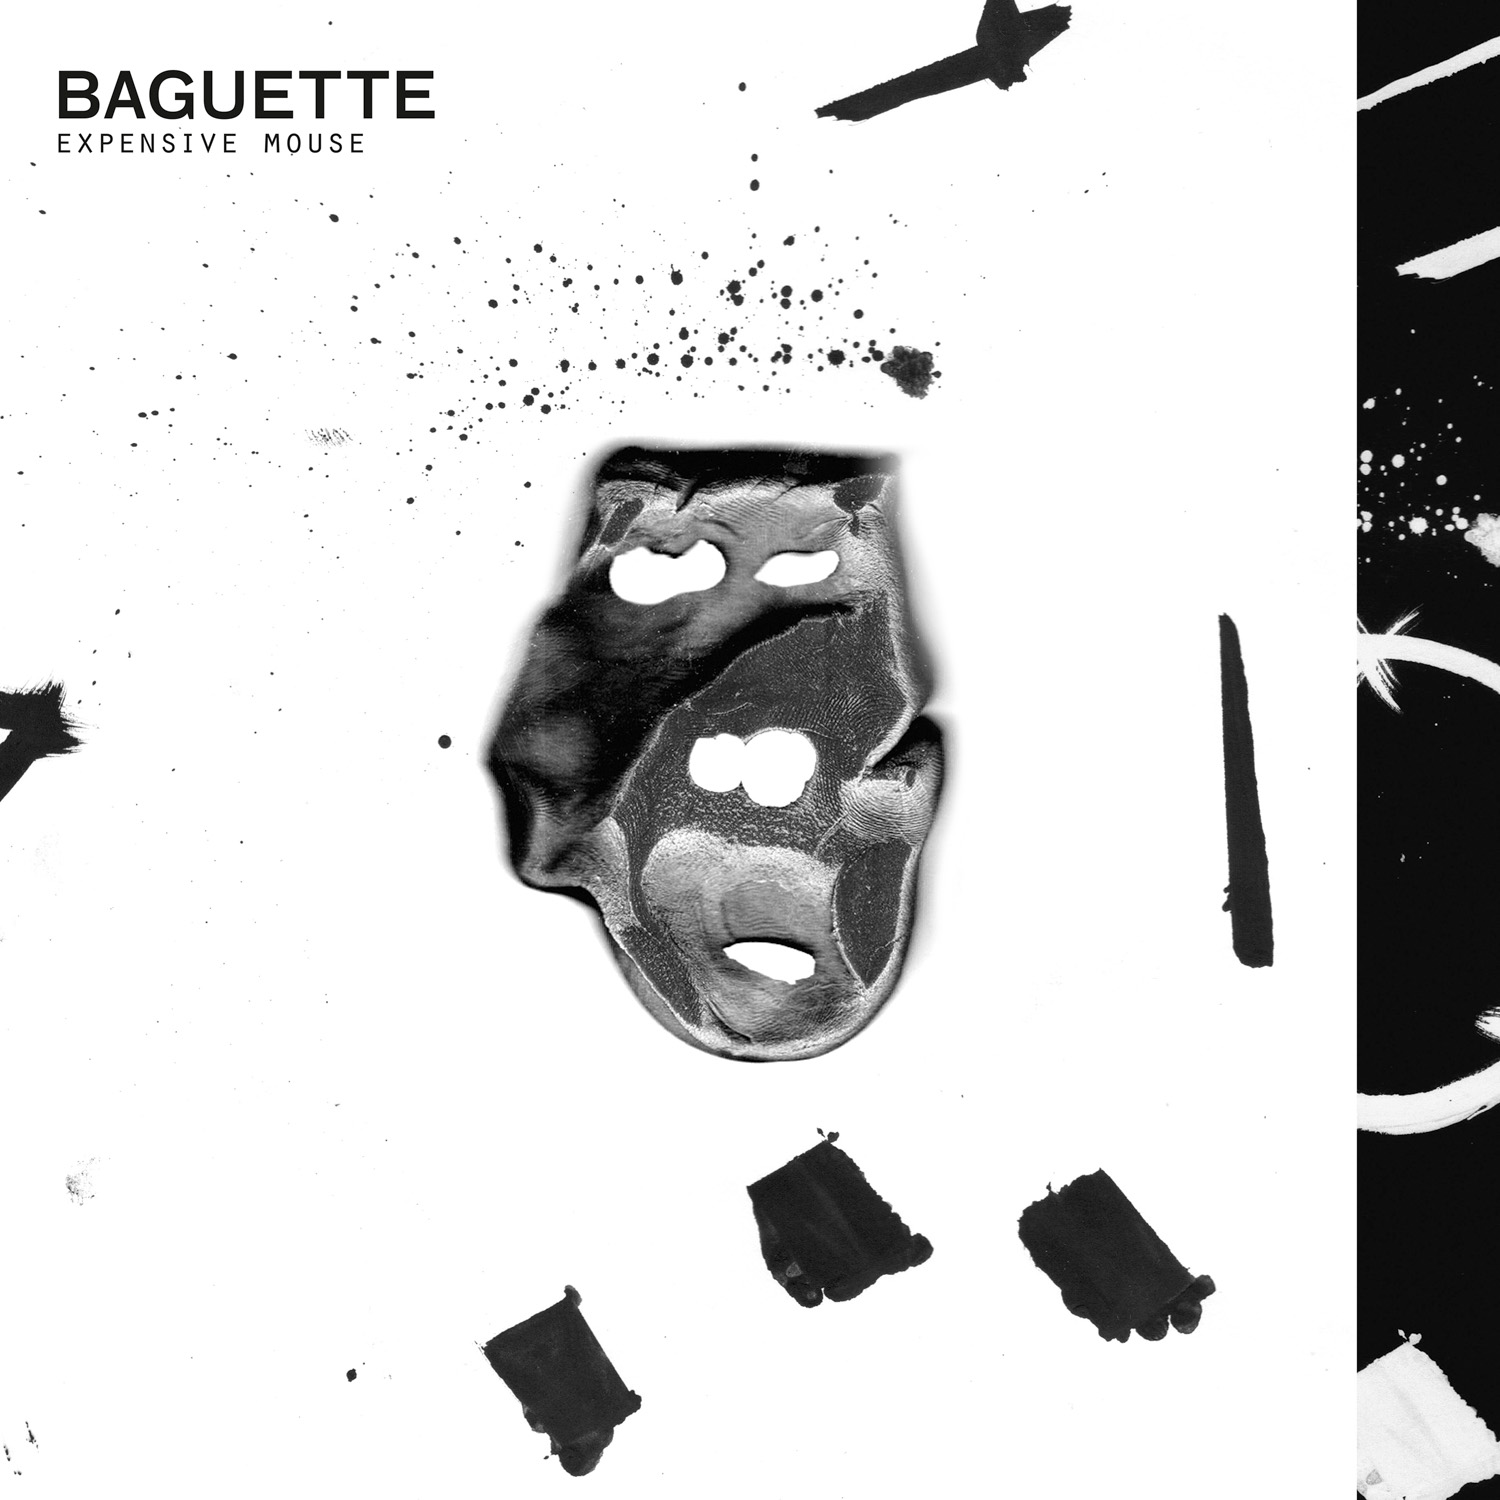 Baguette Band Music Austria Expensive Mouse Album Cover Artwork